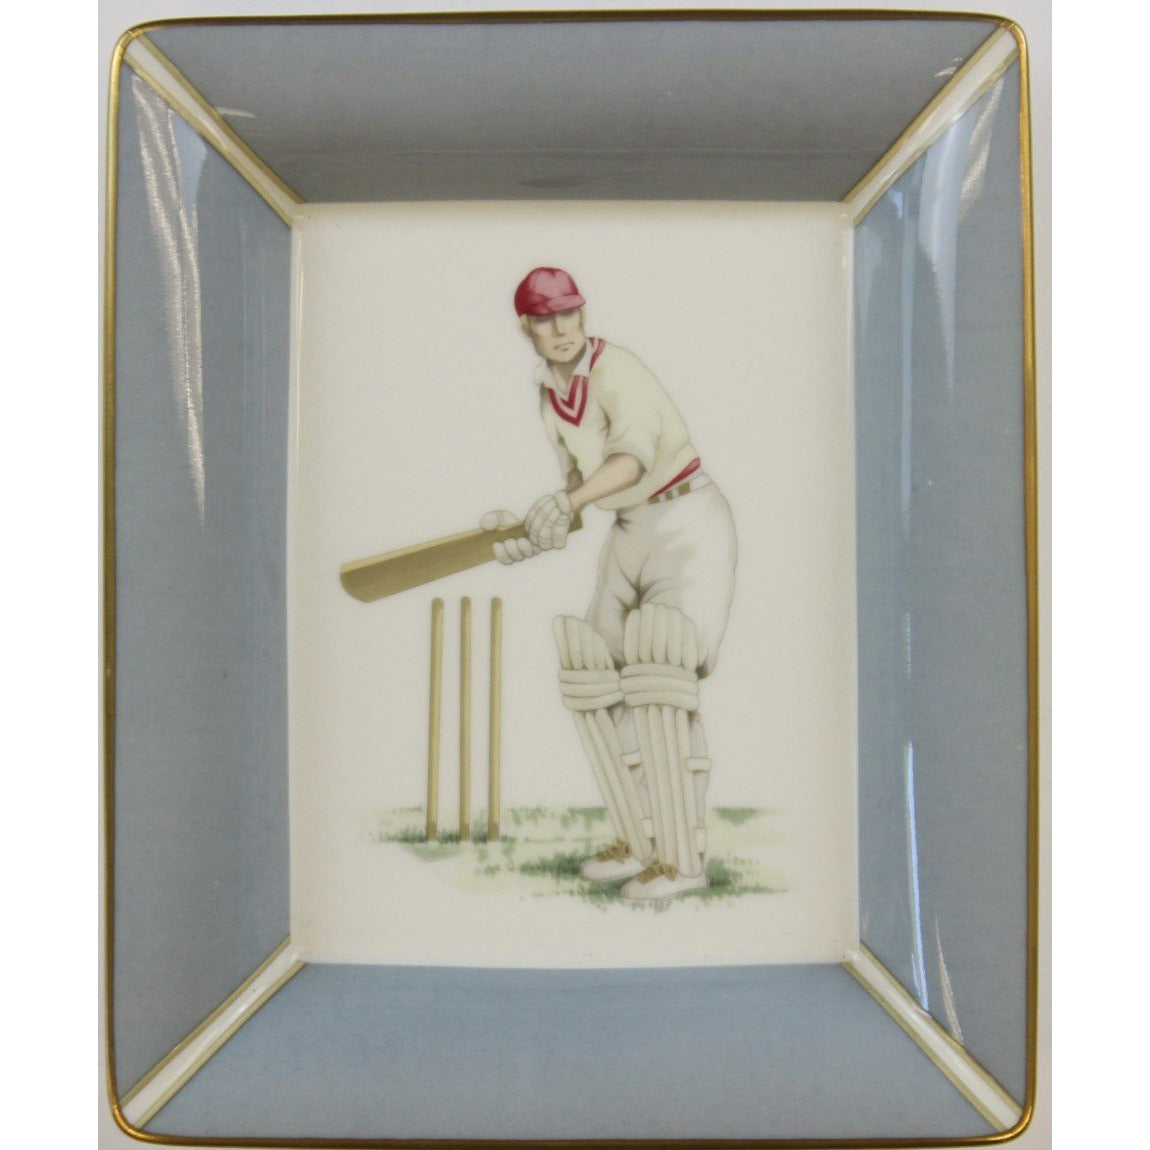 Daniel Hechter Cricket (Bone China) Ashtray